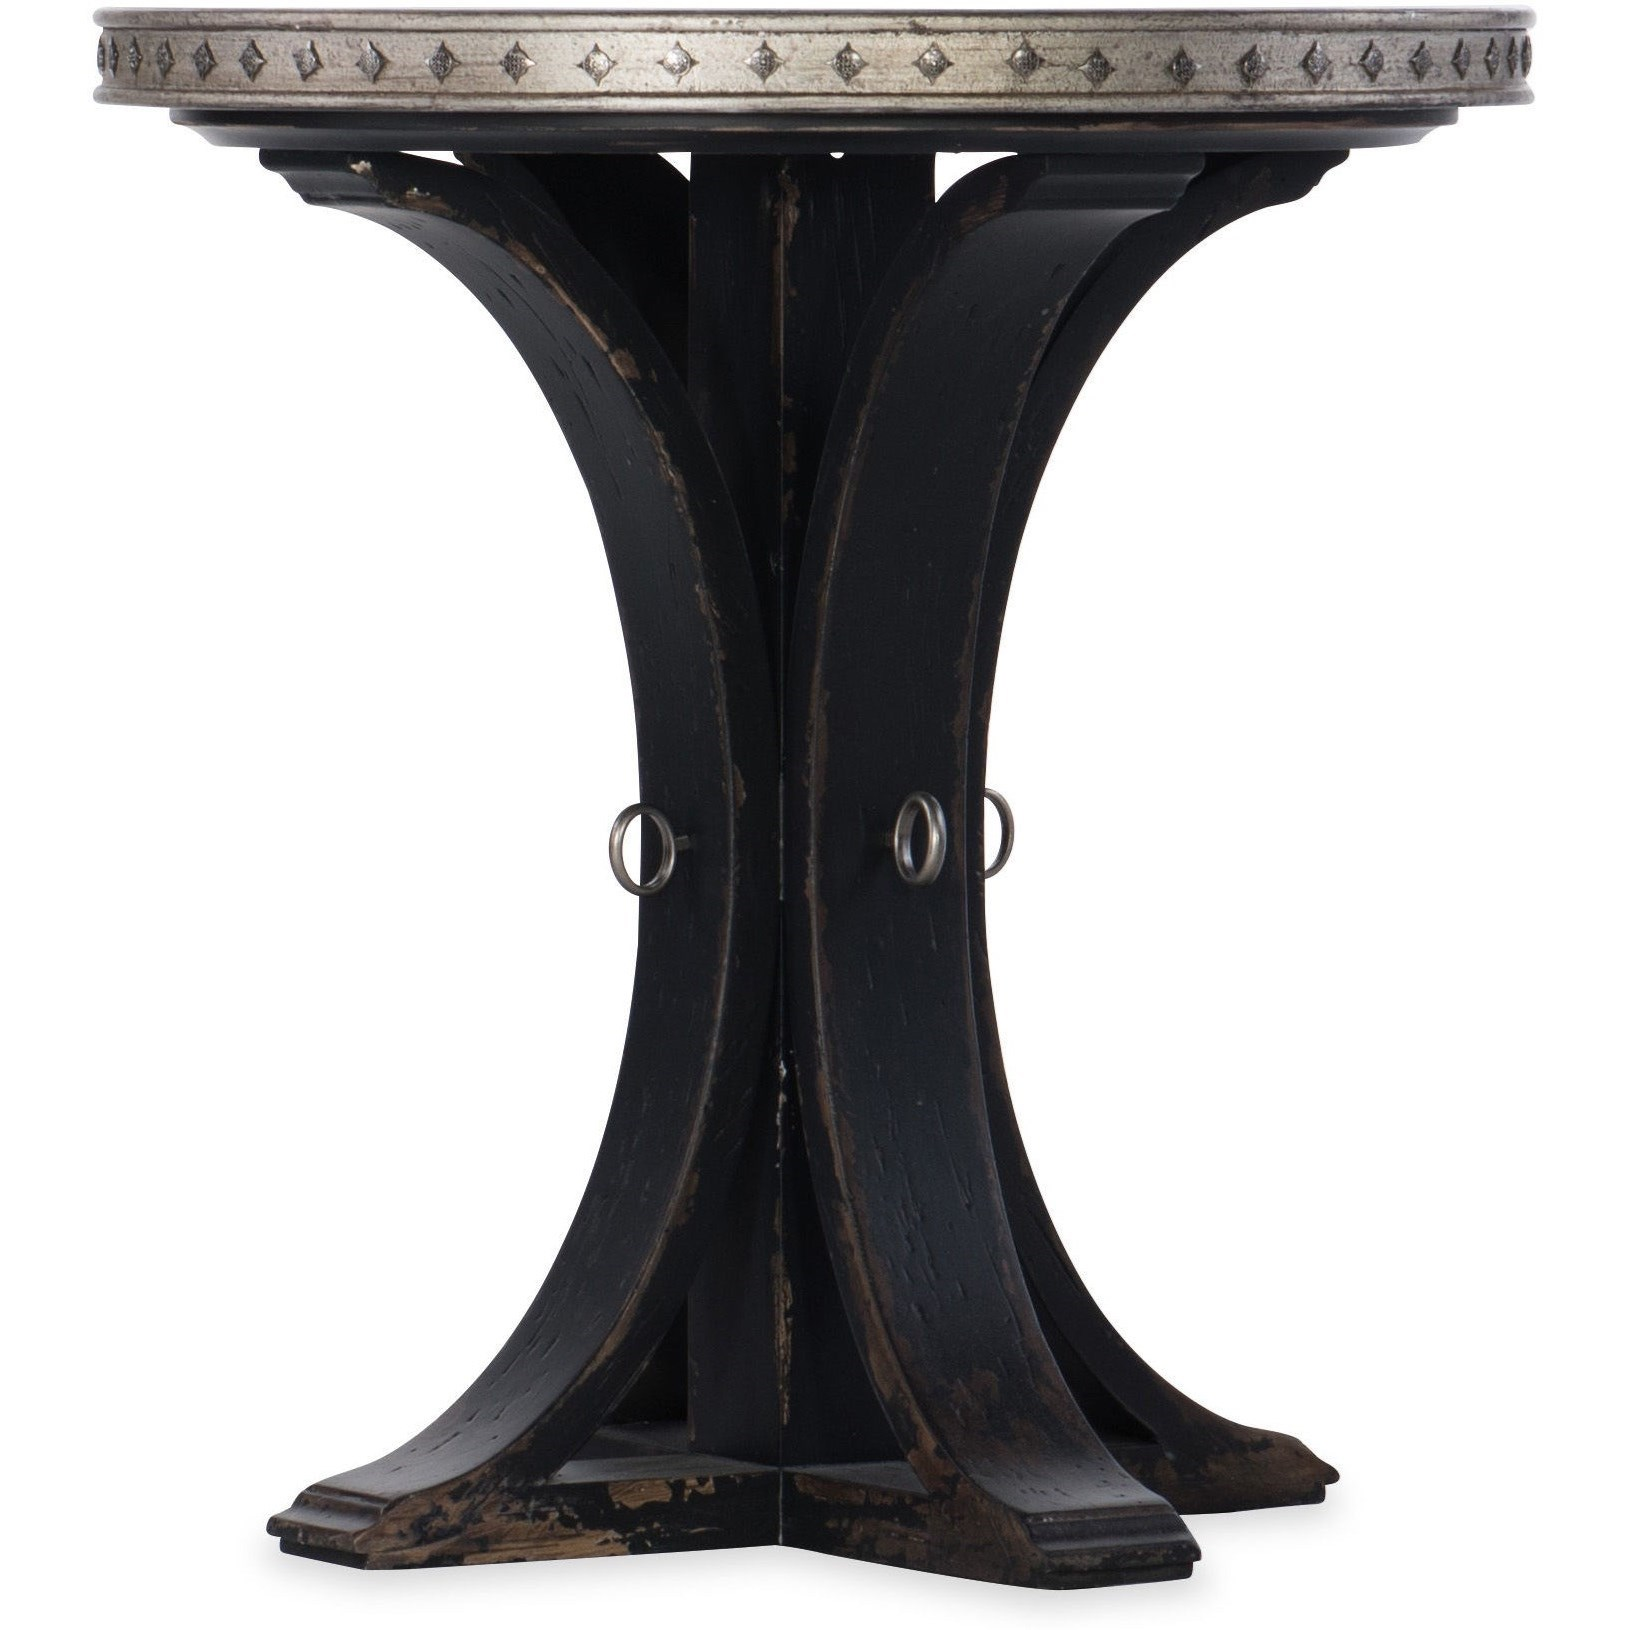 Sanctuary French 75 Champagne Table by Hooker Furniture at Baer's Furniture